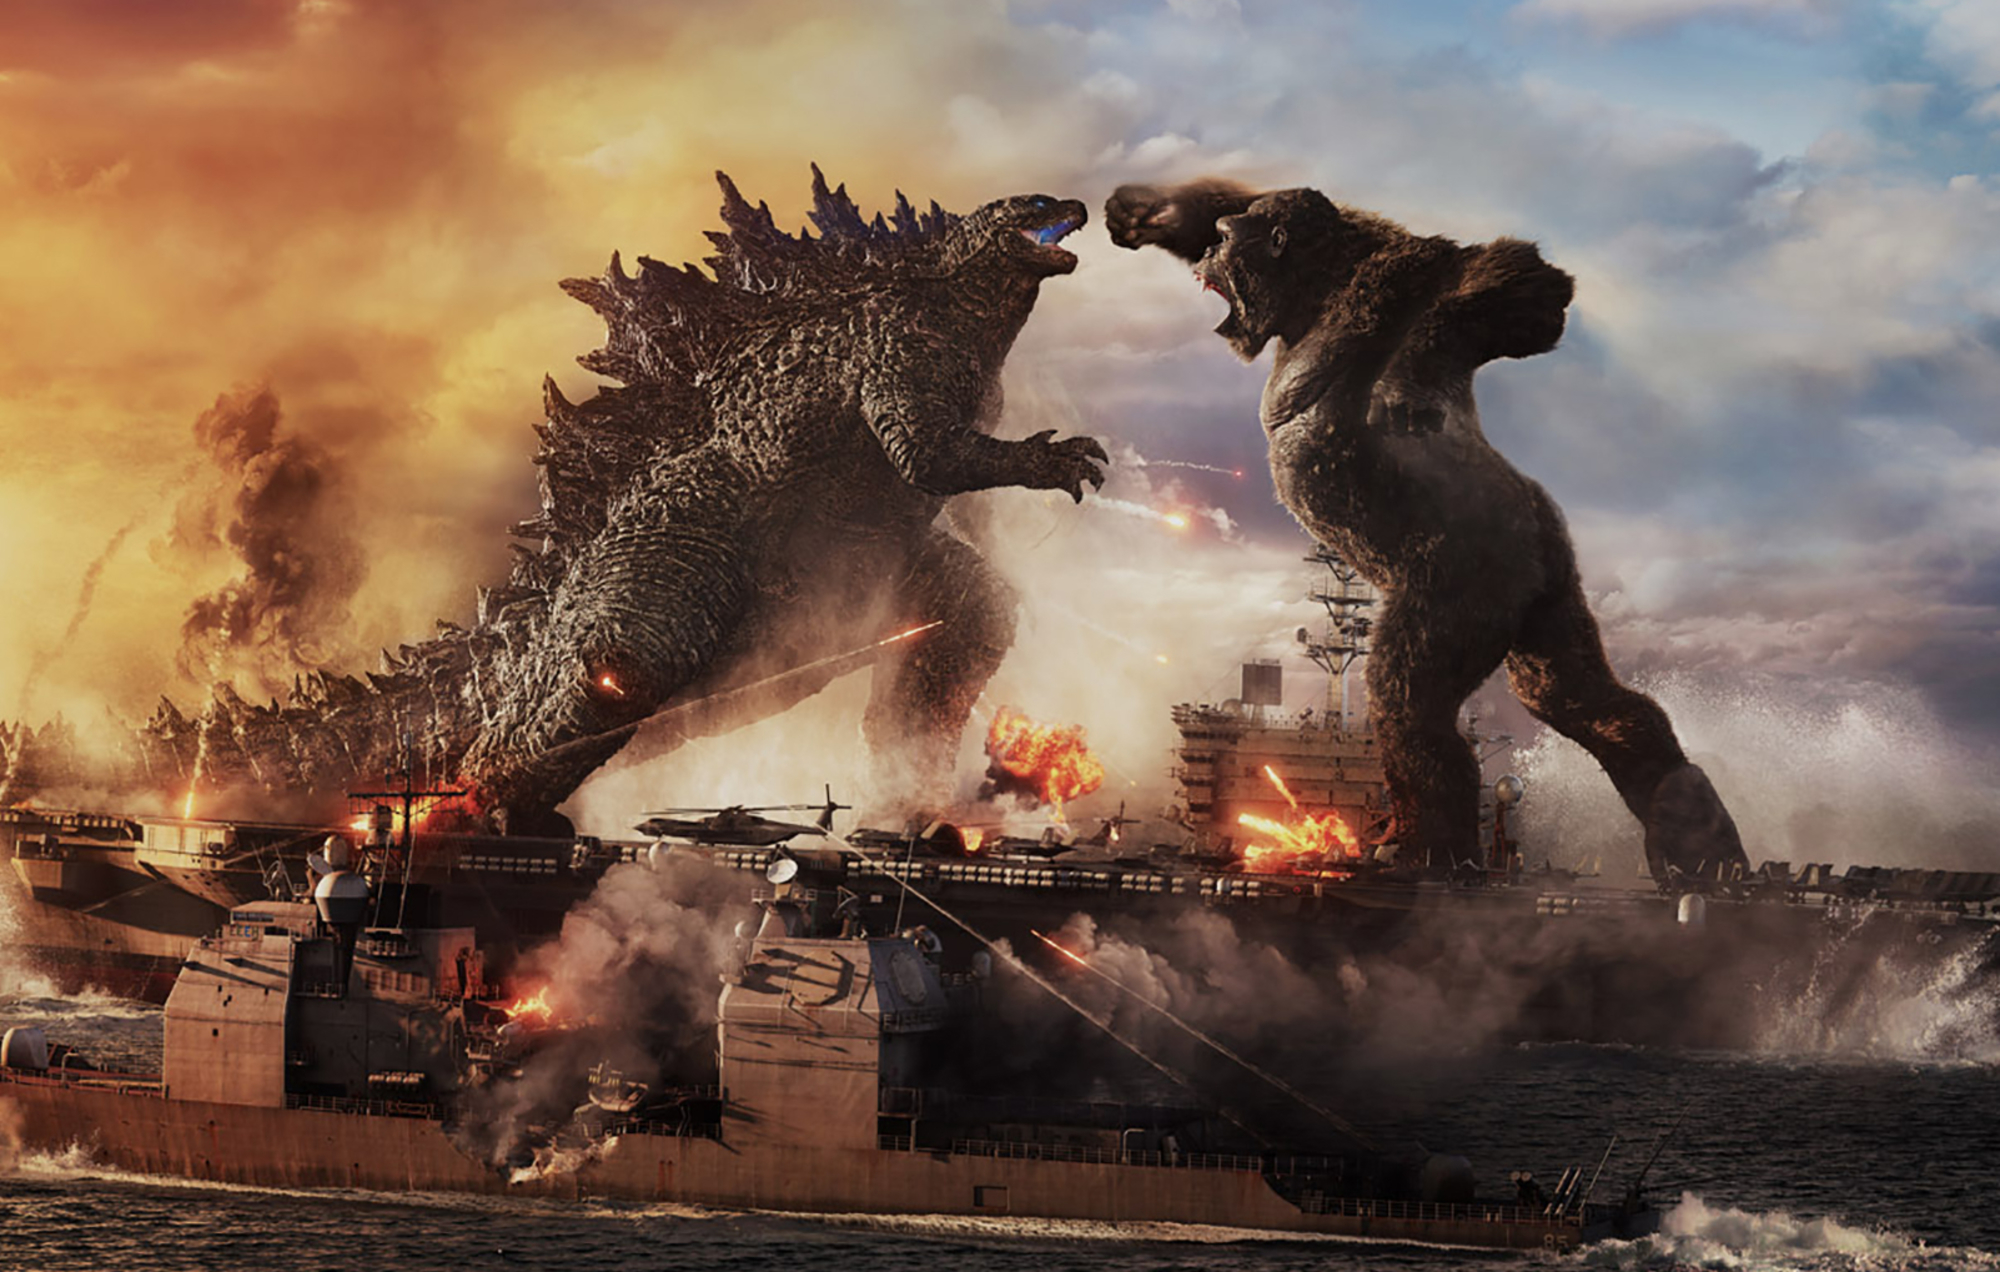 'Godzilla vs. Kong' becomes US highest-grossing film of the pandemic era